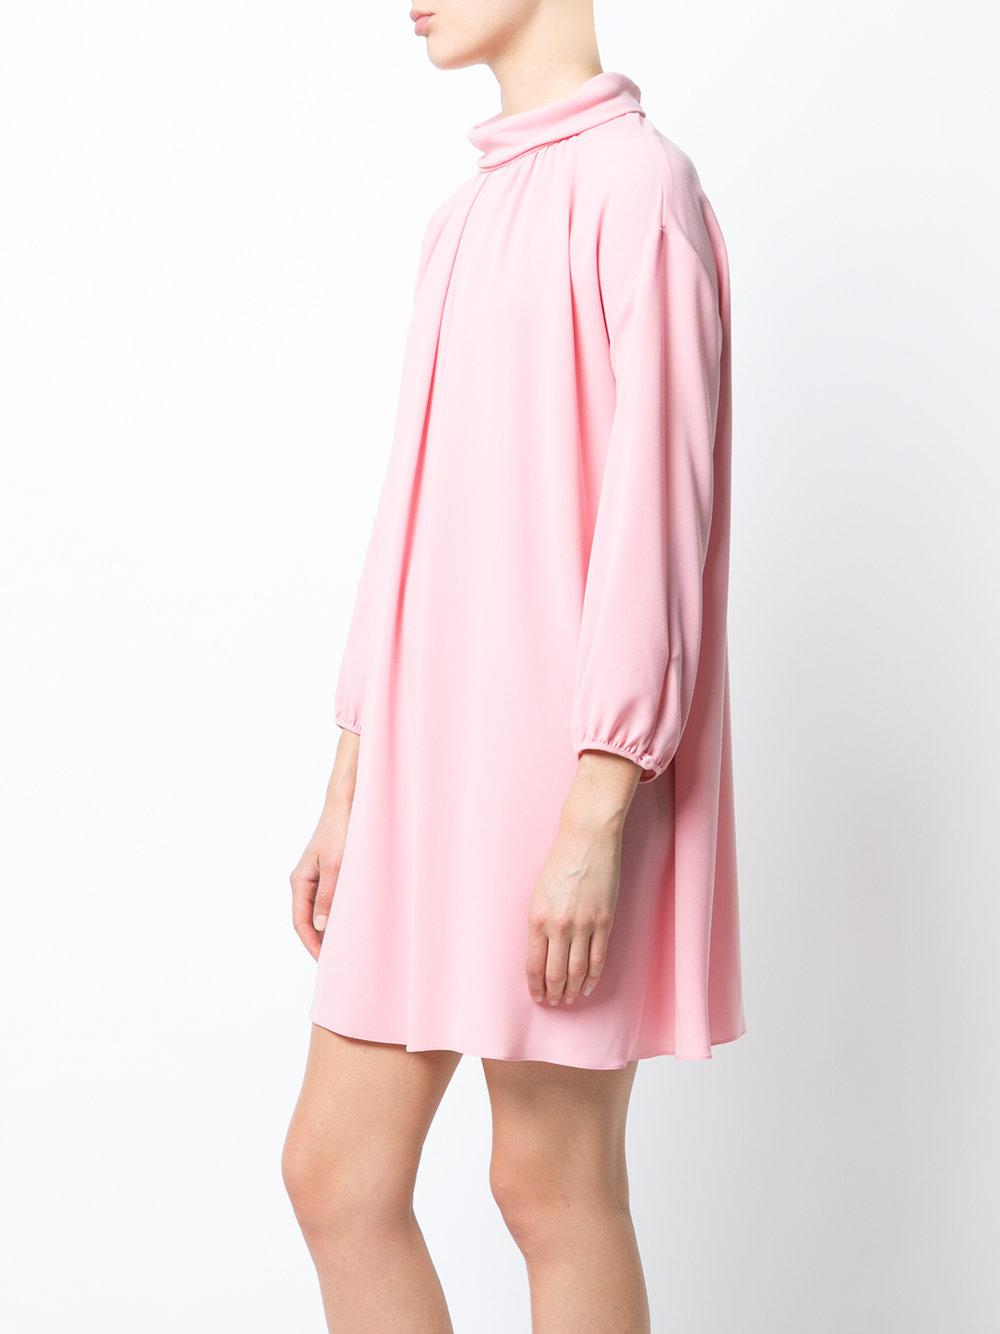 Boutique Moschino high collar dress Cheap Sale For Cheap Discount New Arrival Where To Buy Best Prices For Sale Marketable For Sale UO7lixN